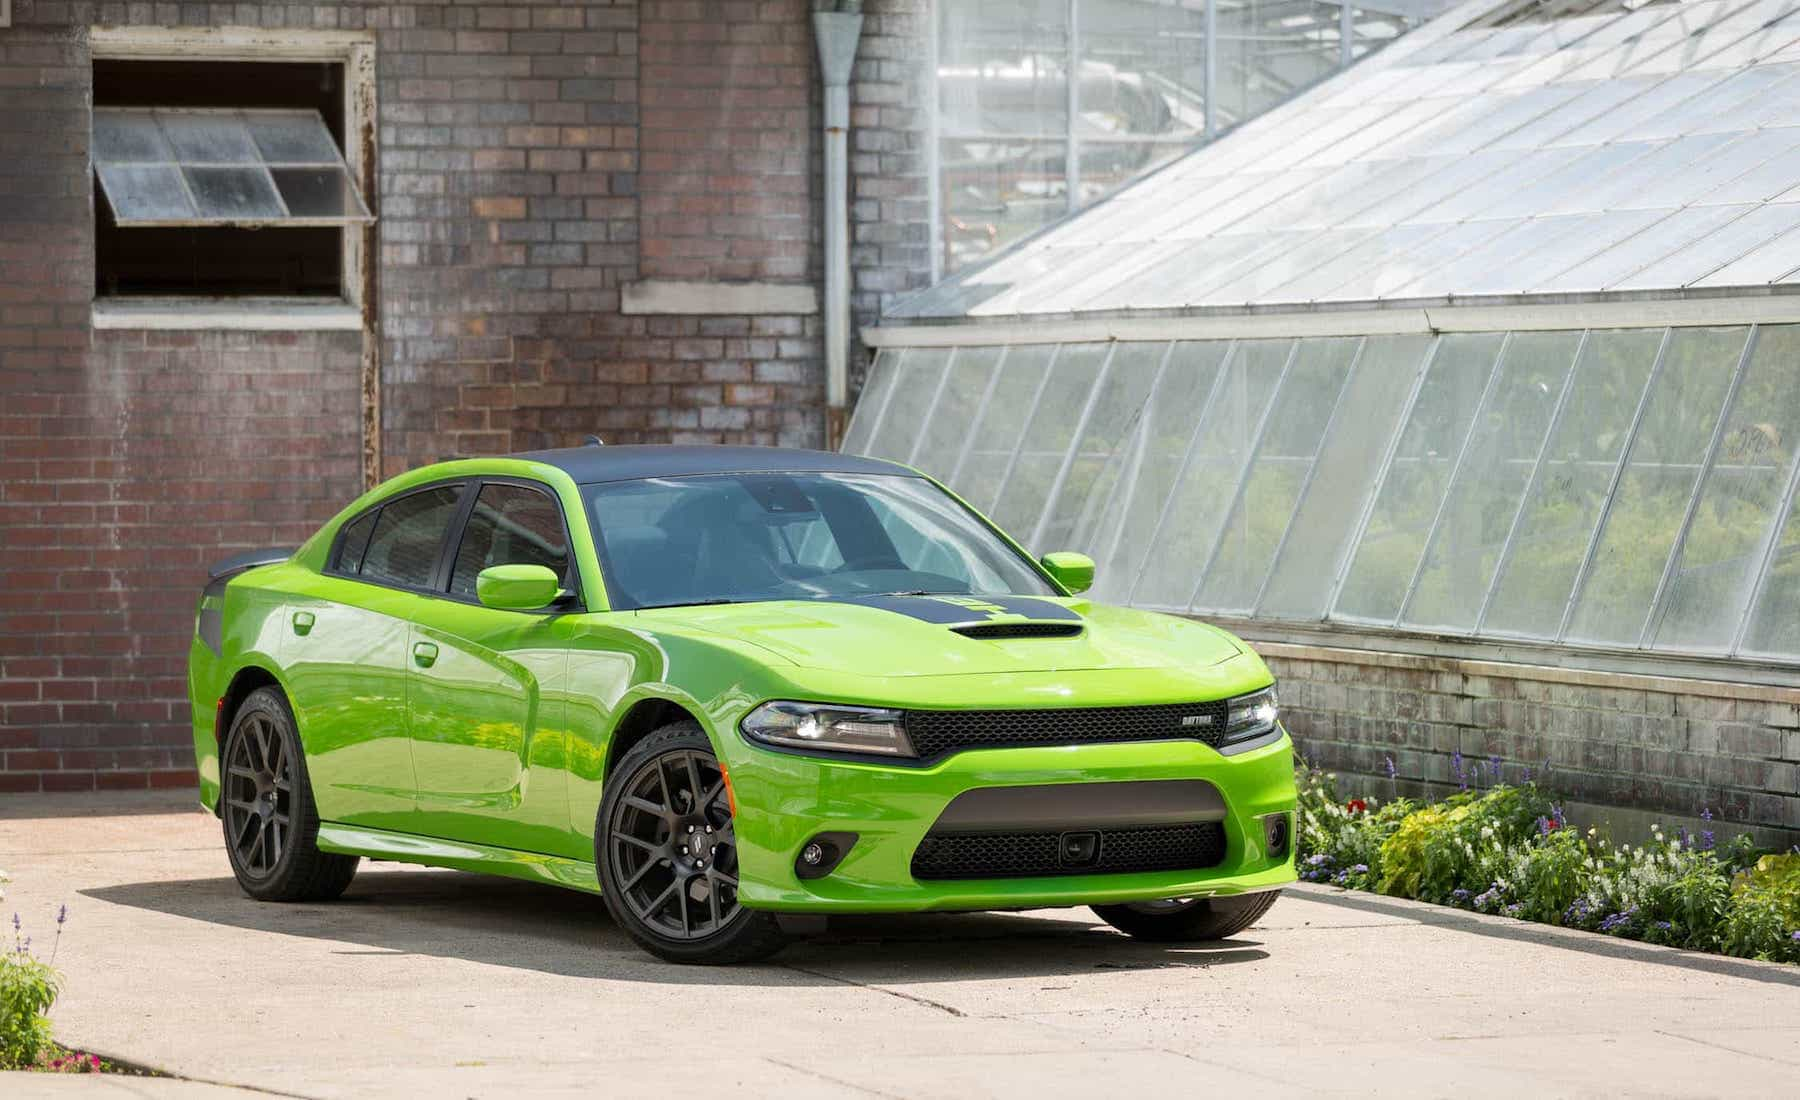 2017 Dodge Charger Daytona 5.7L V8 Exterior (Photo 26 of 38)